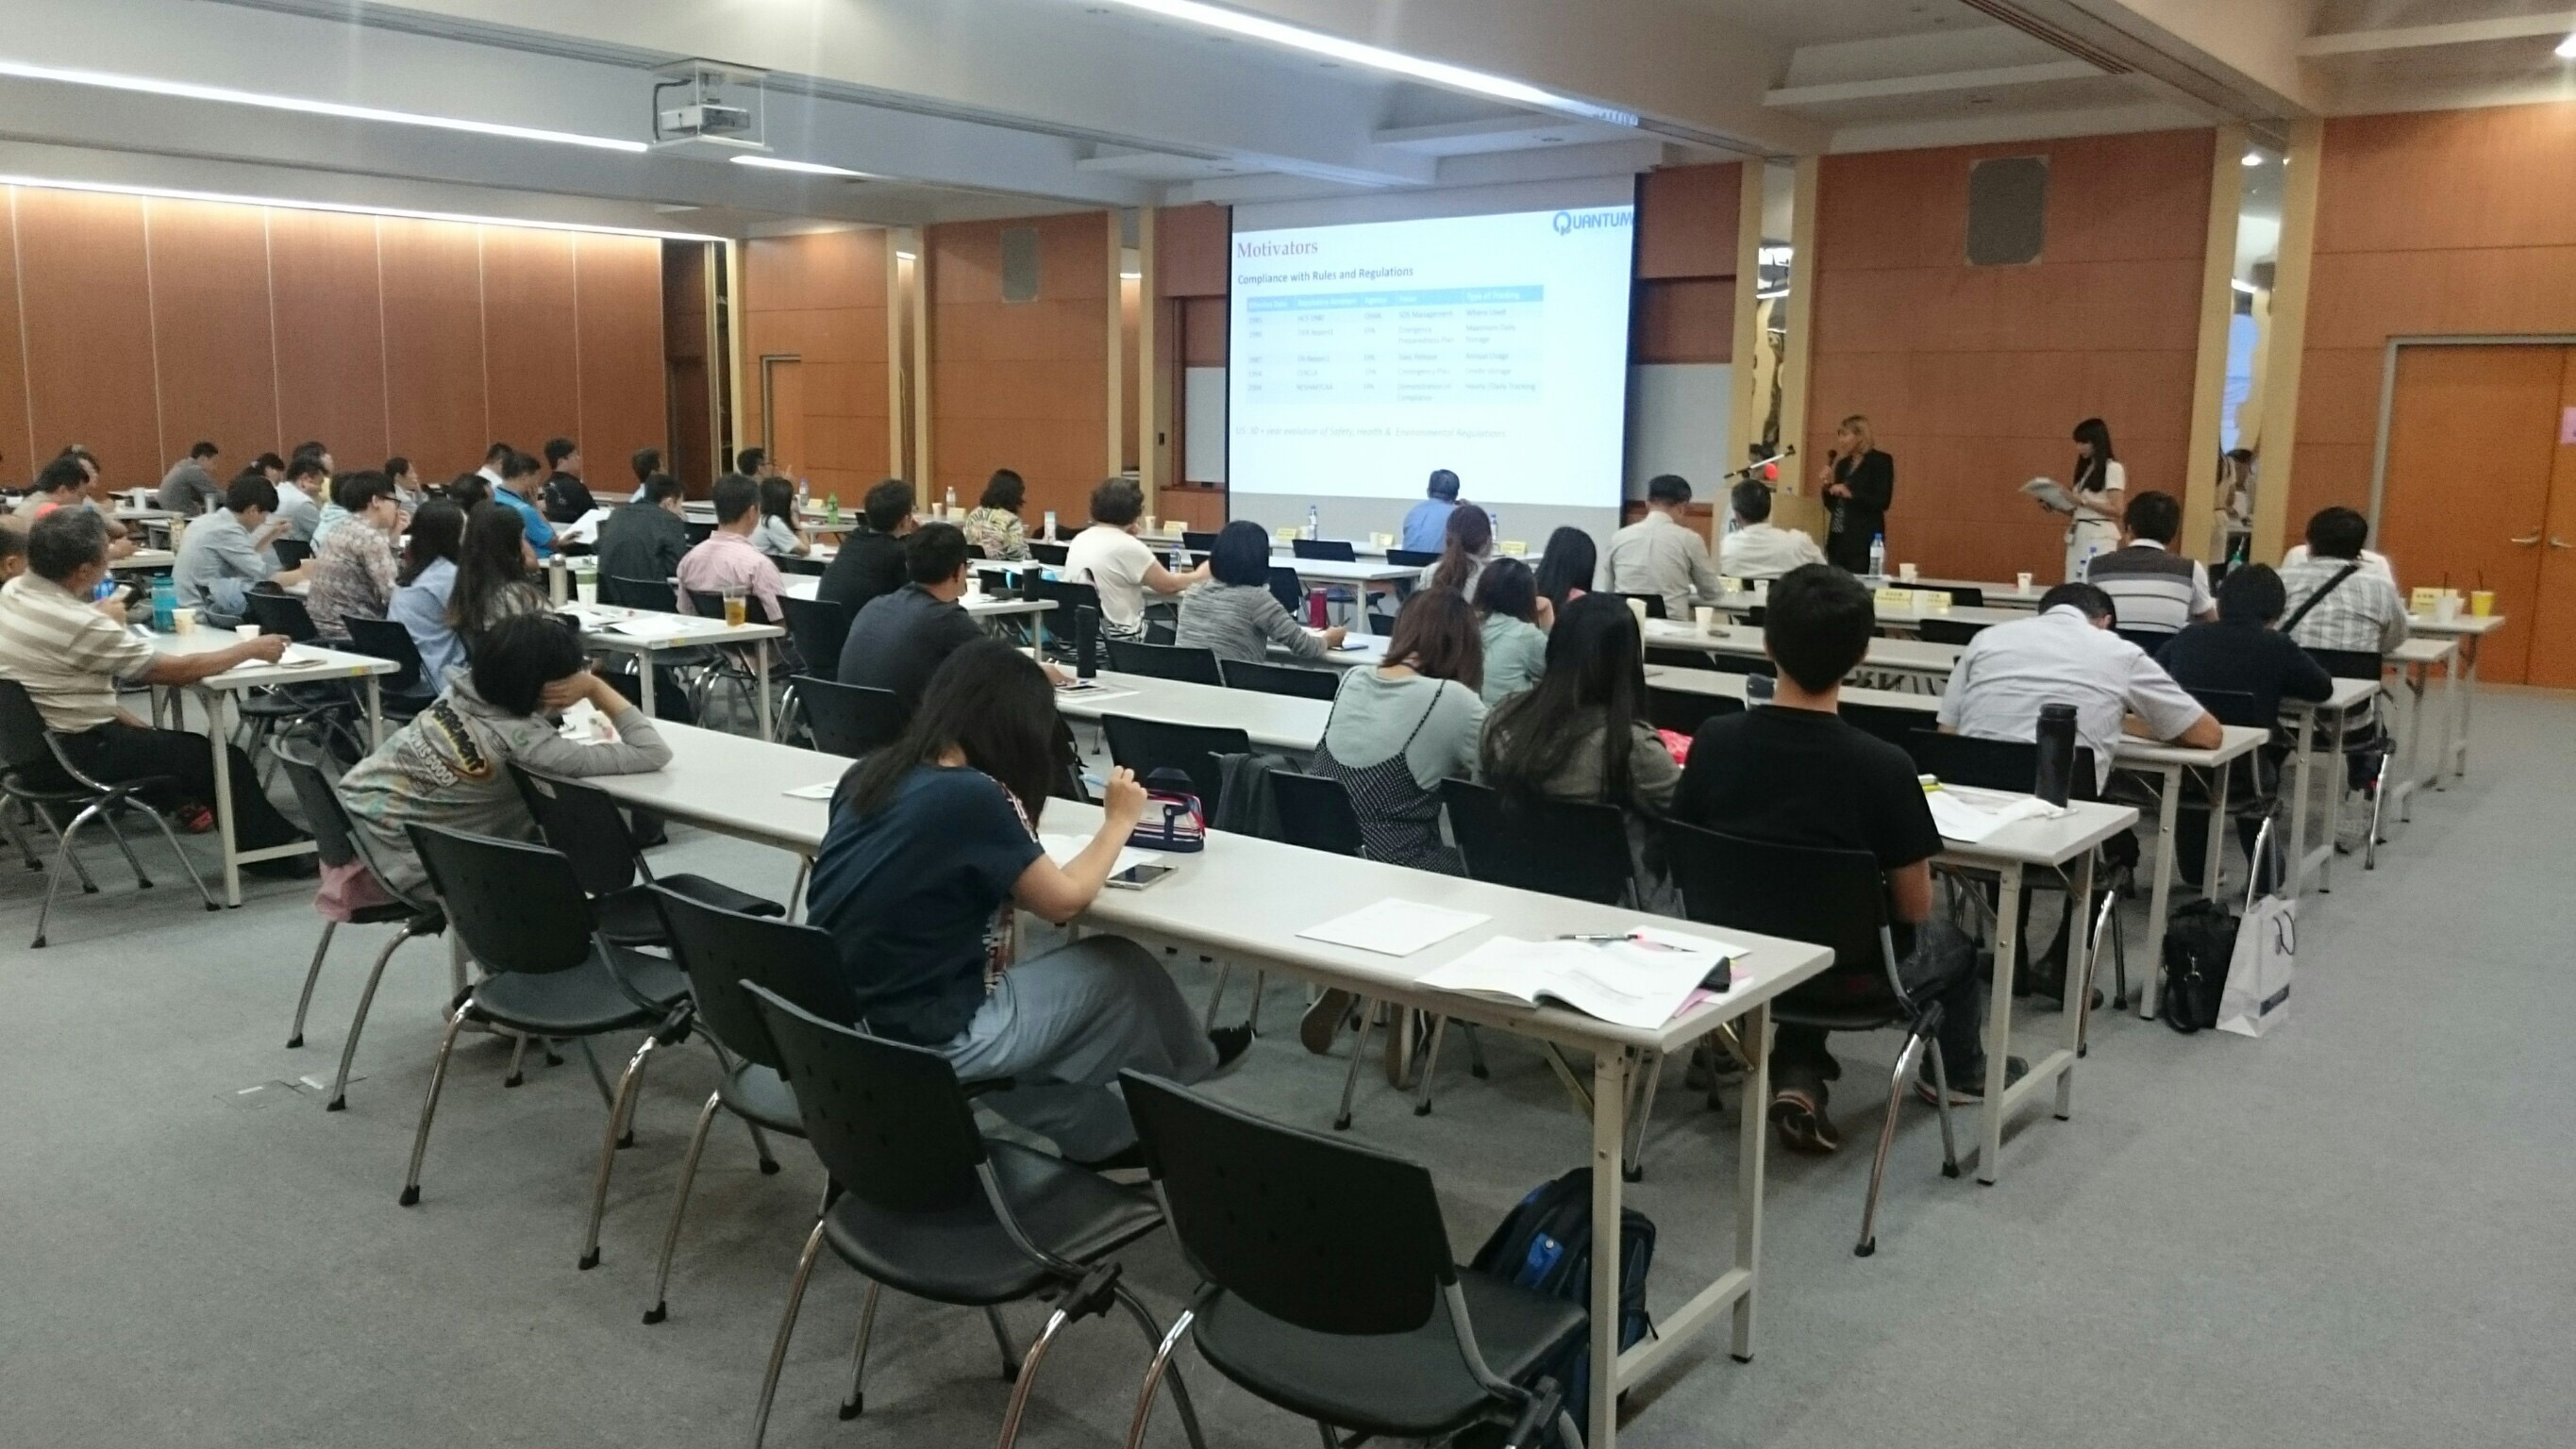 attendees in chemical management seminar